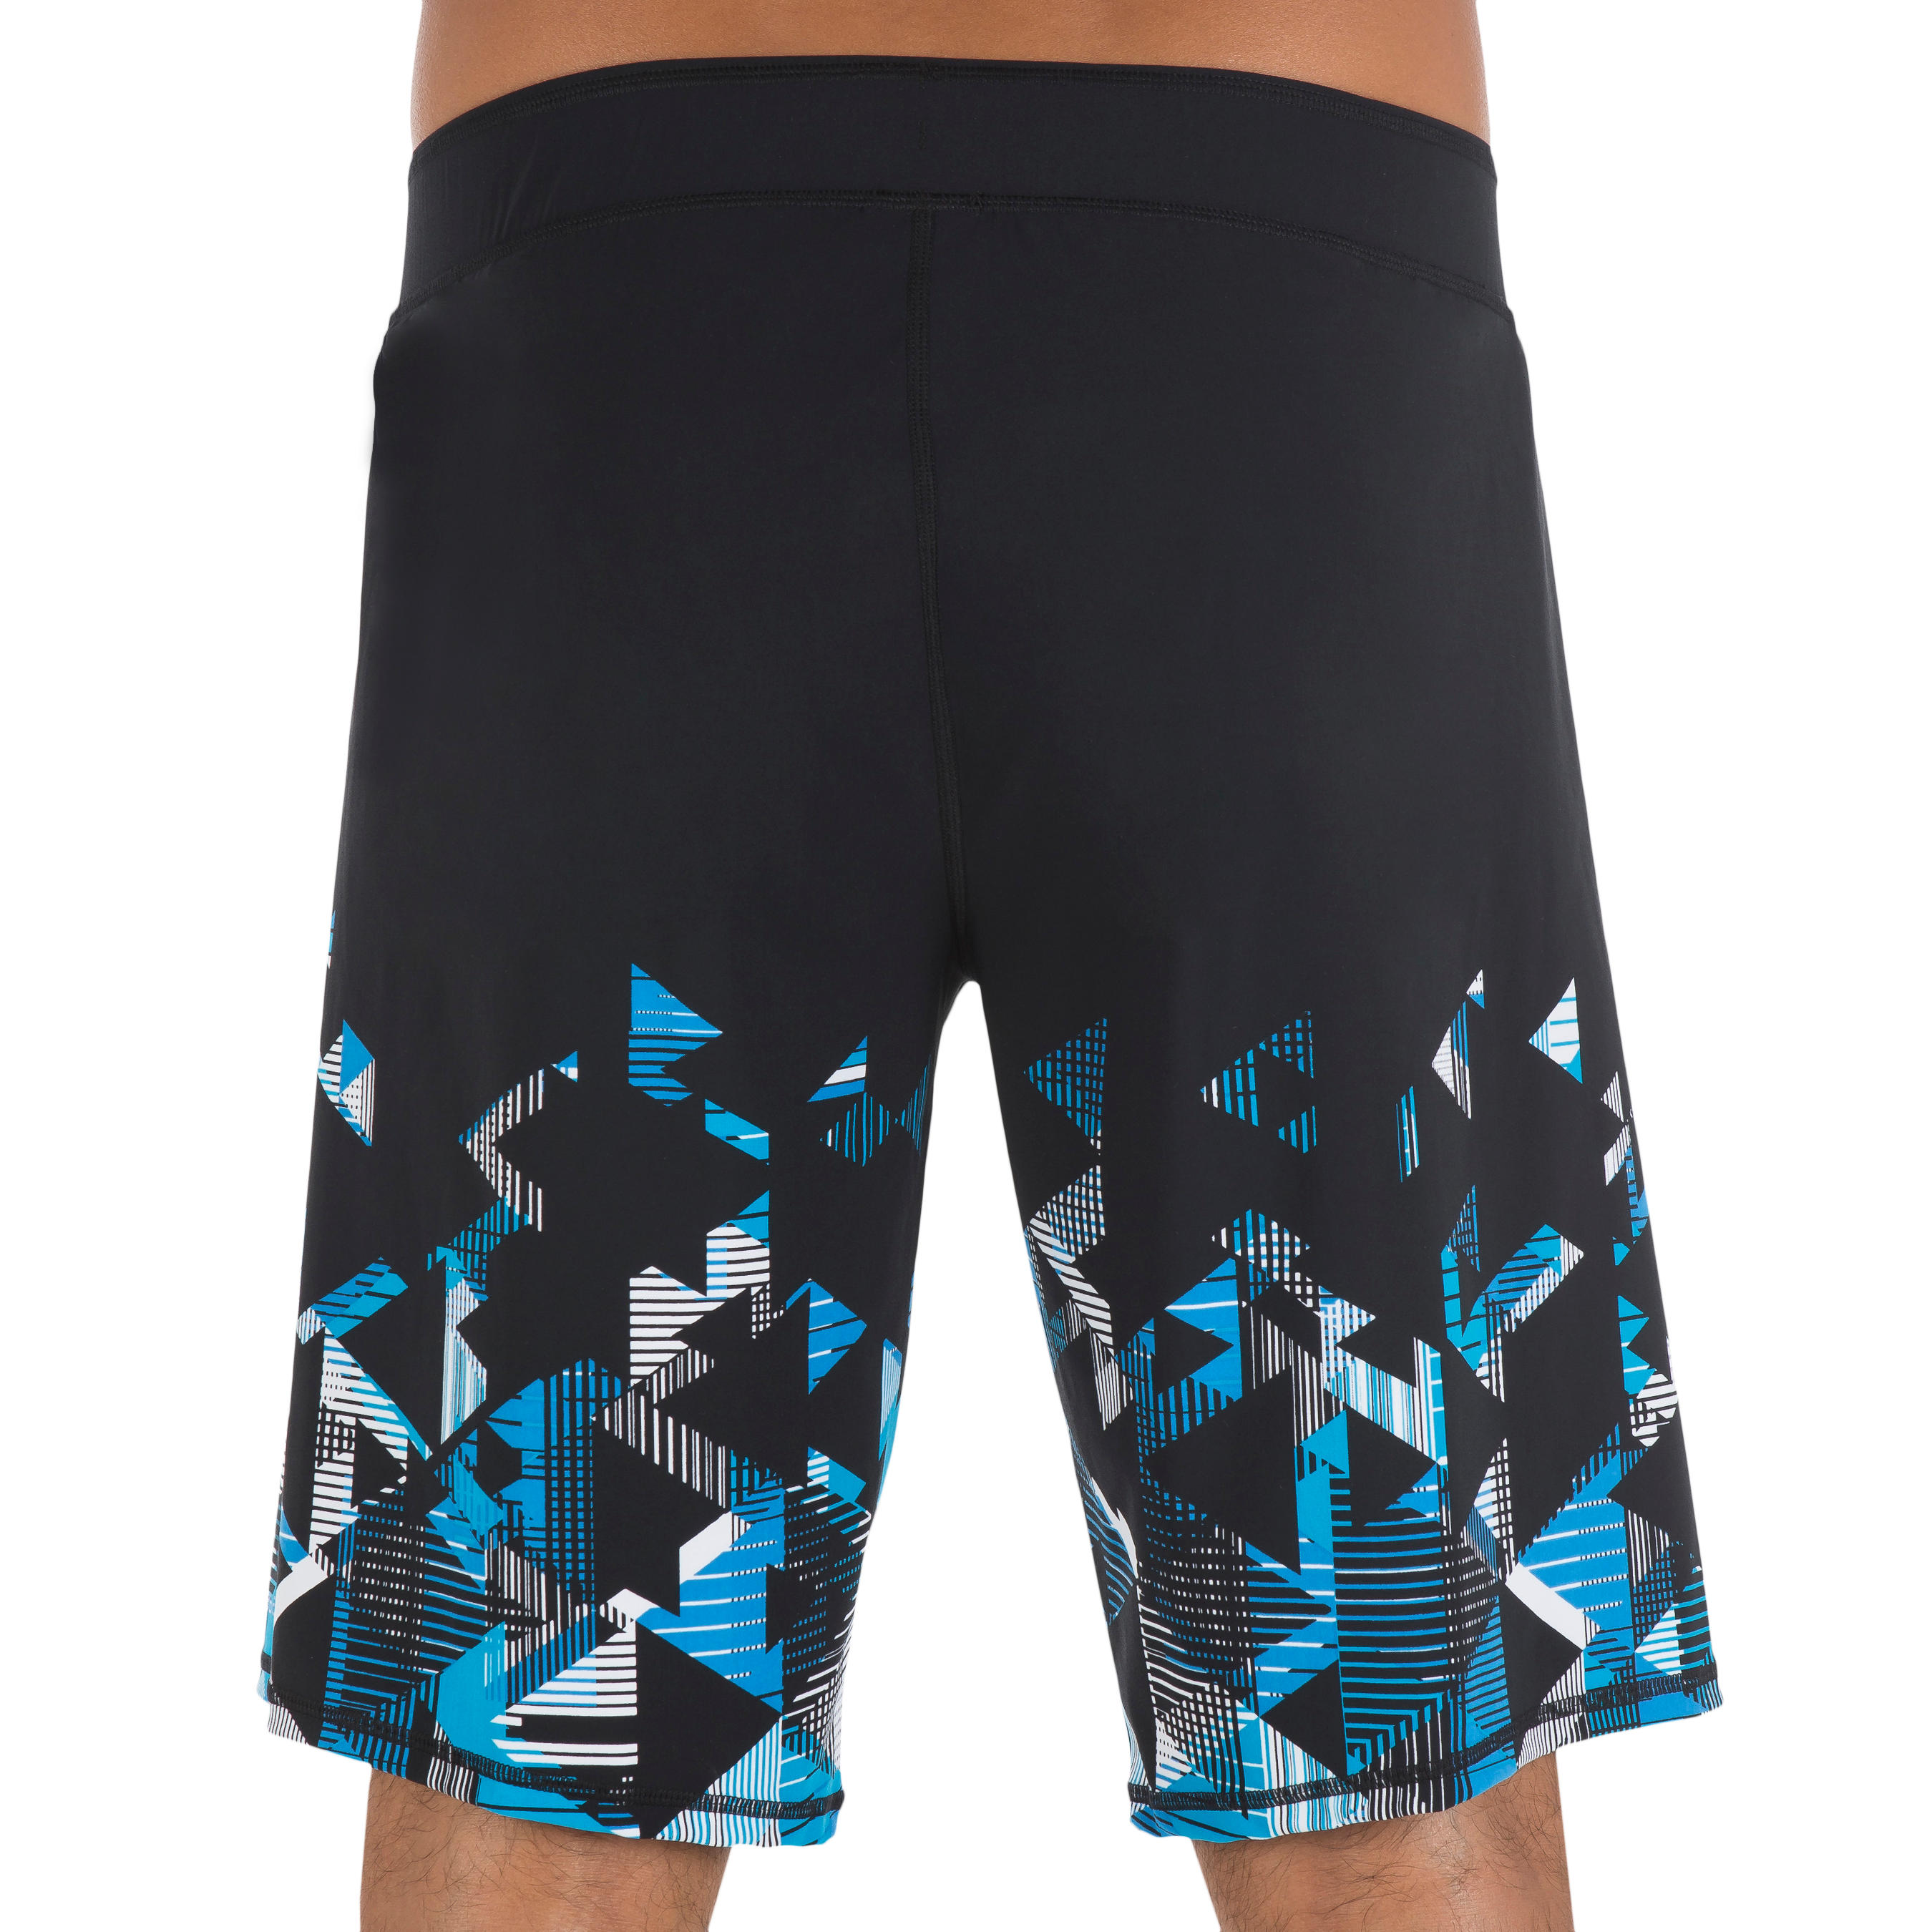 MAILLOT DE BAIN HOMME SHORT 190 LONG STRIL BLEU